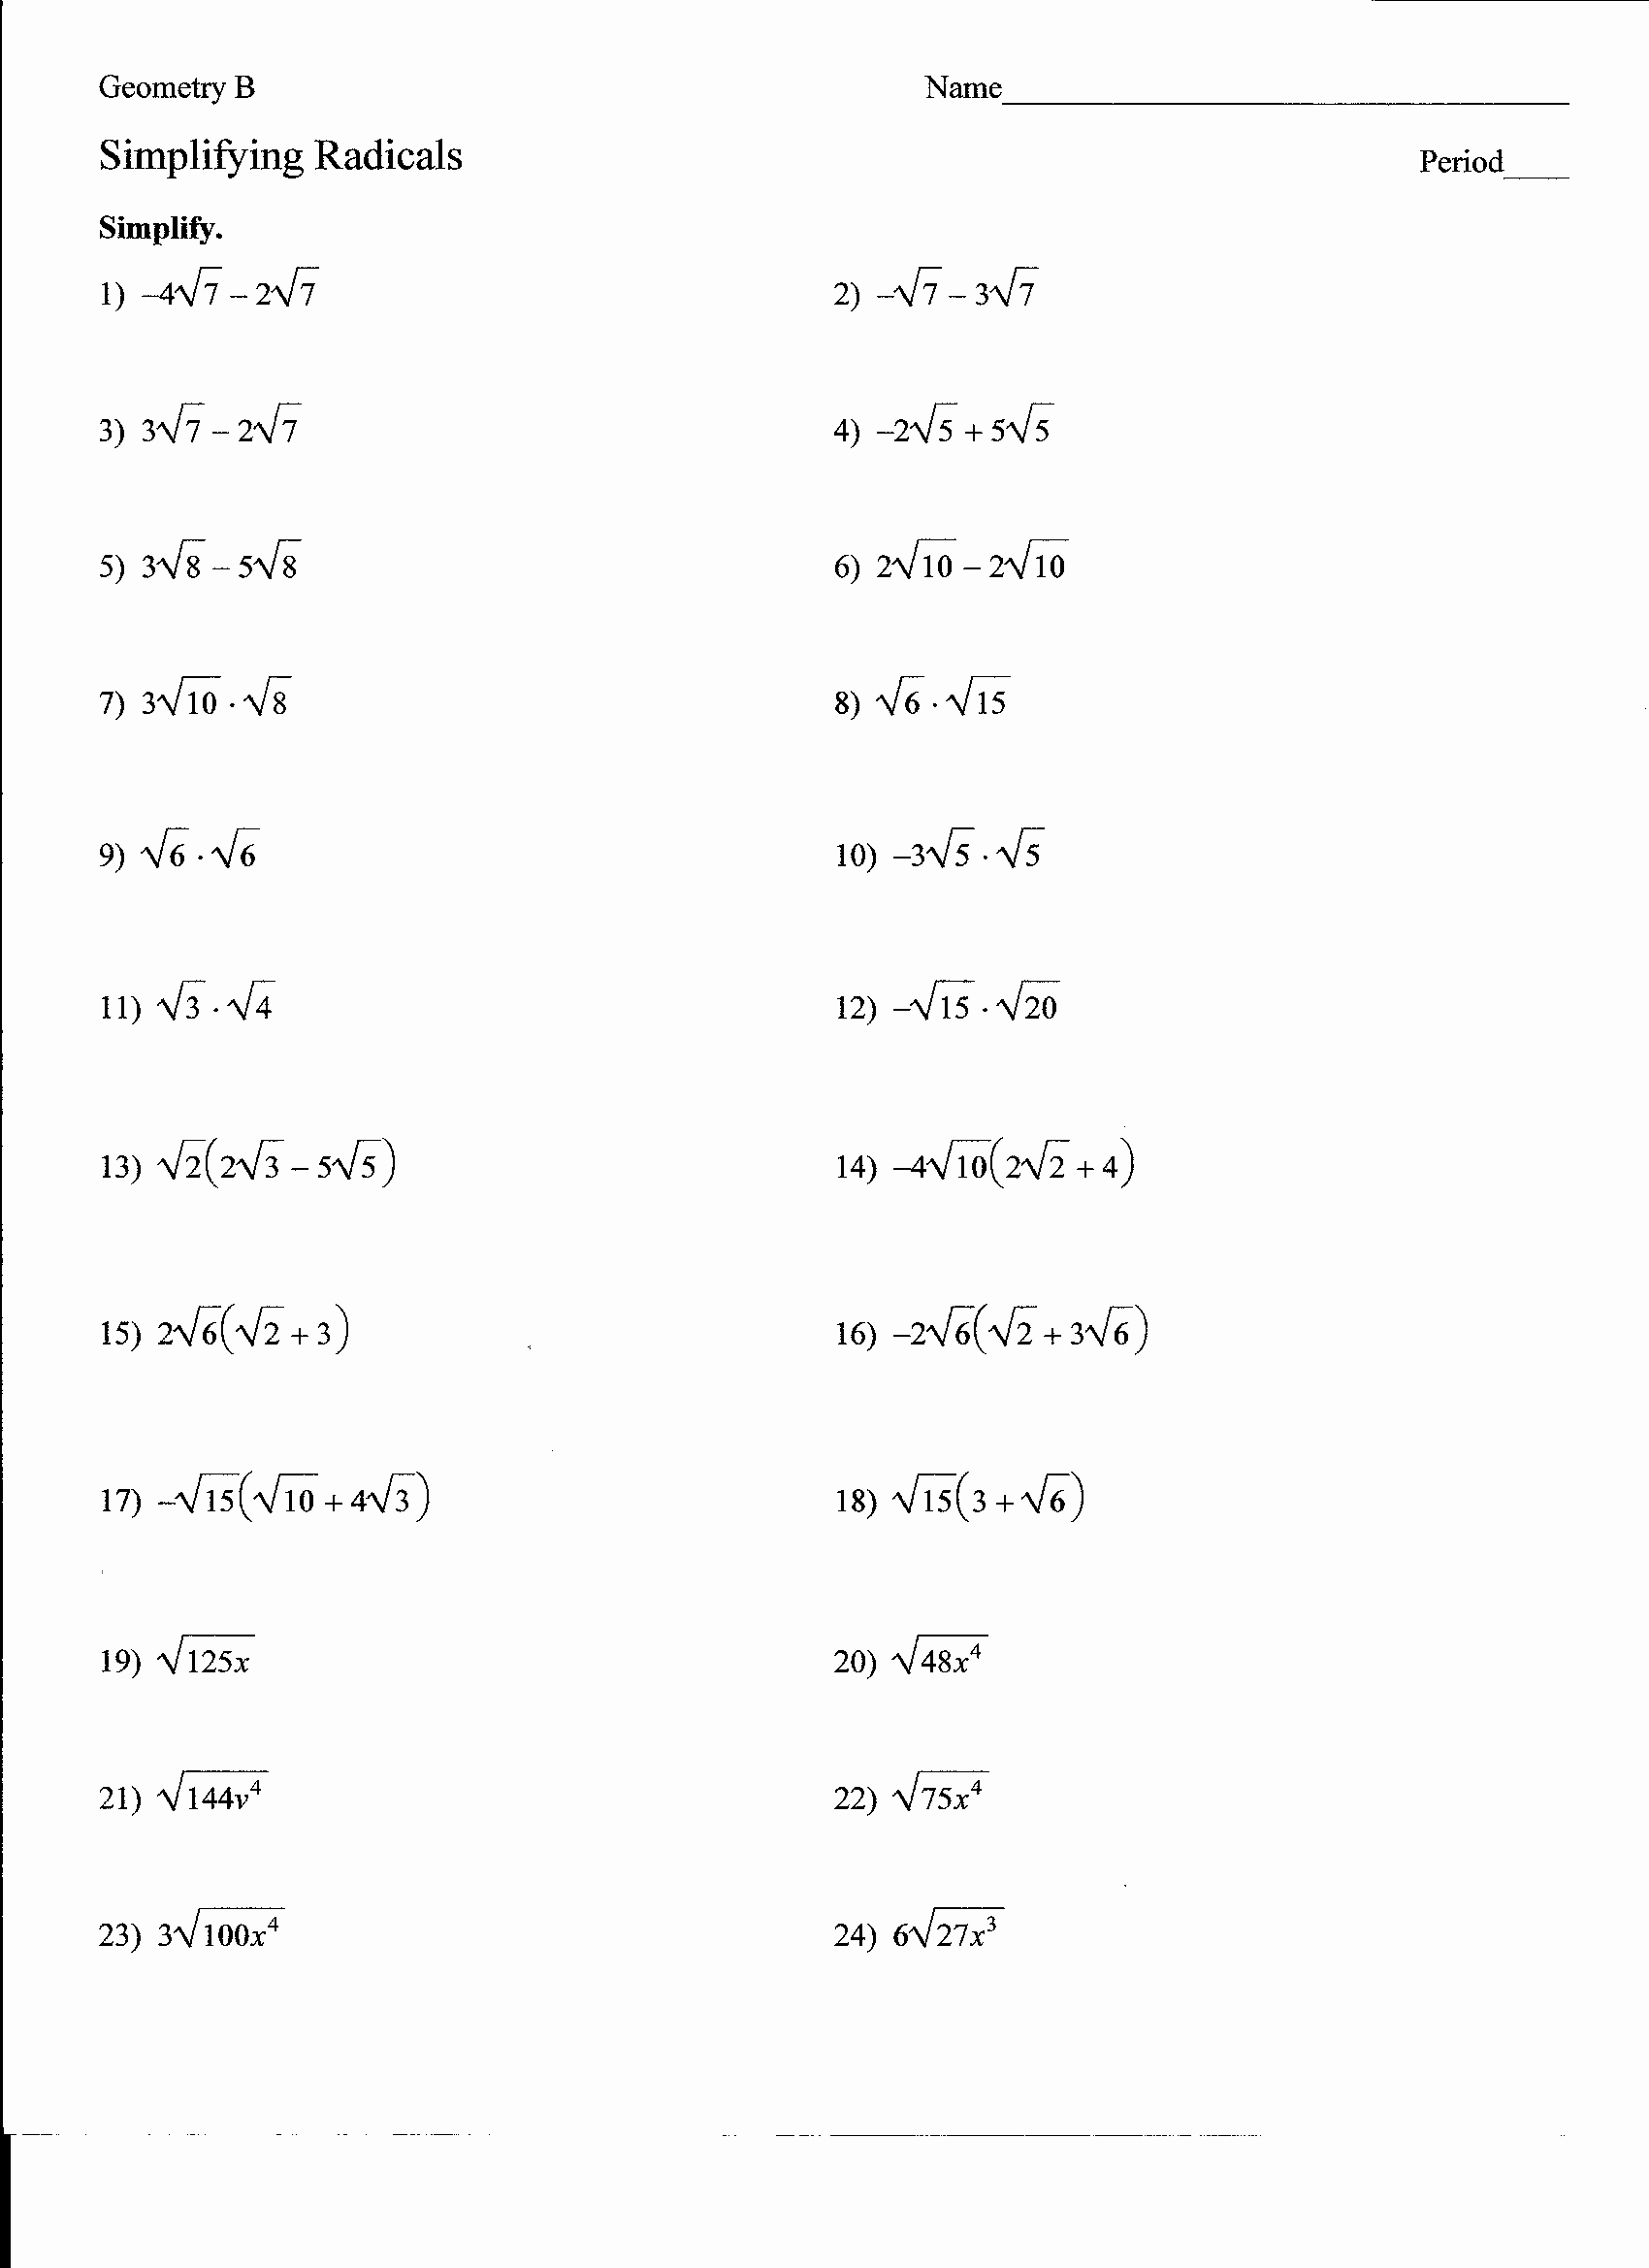 Algebra 1 Review Worksheet Luxury Algebra 1 Review Simplifying Radicals Answers